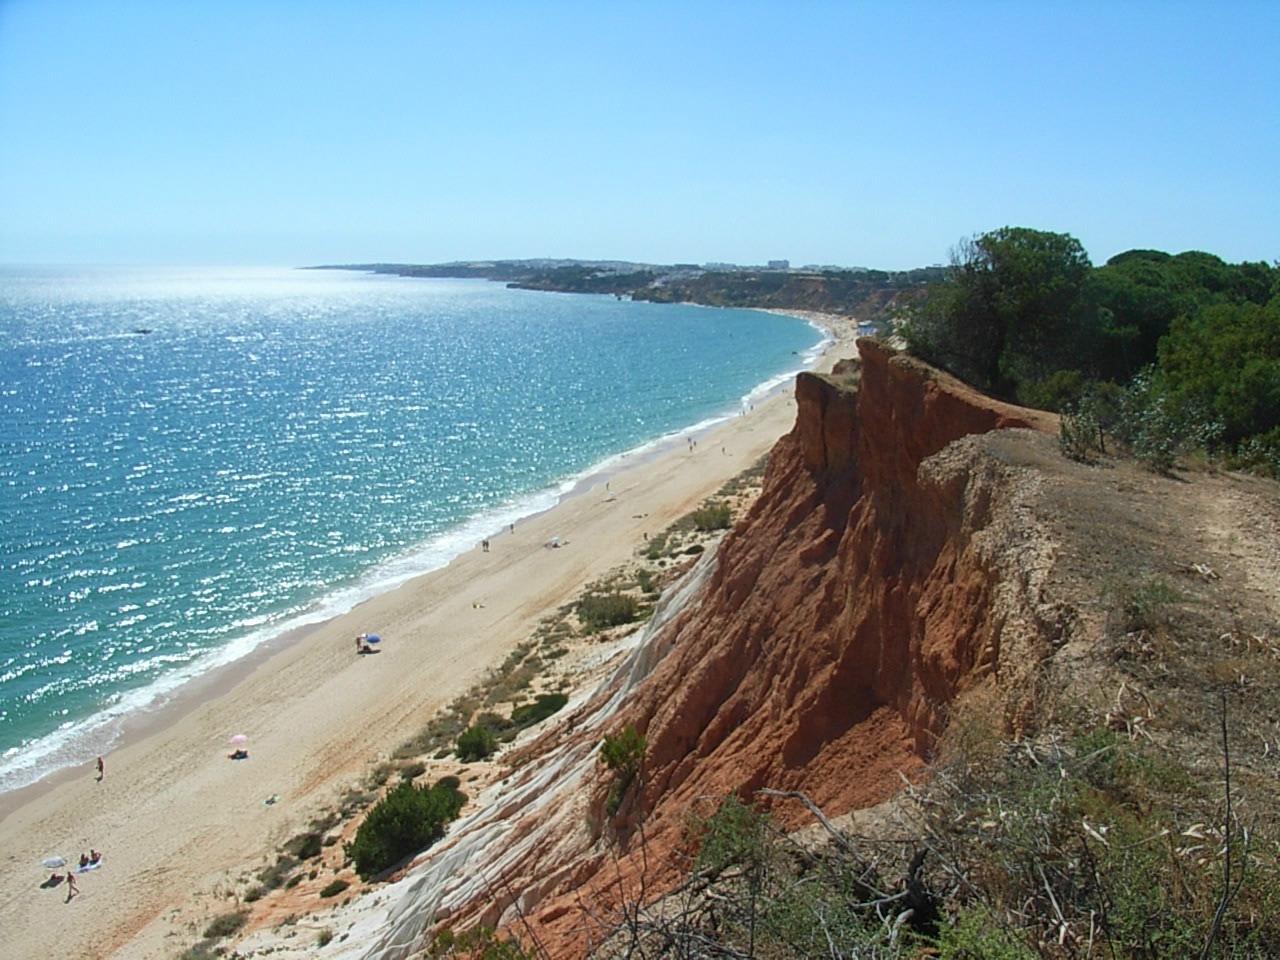 Falesia Beach in Albufeira is a stunning, long stretch of beautiful beach